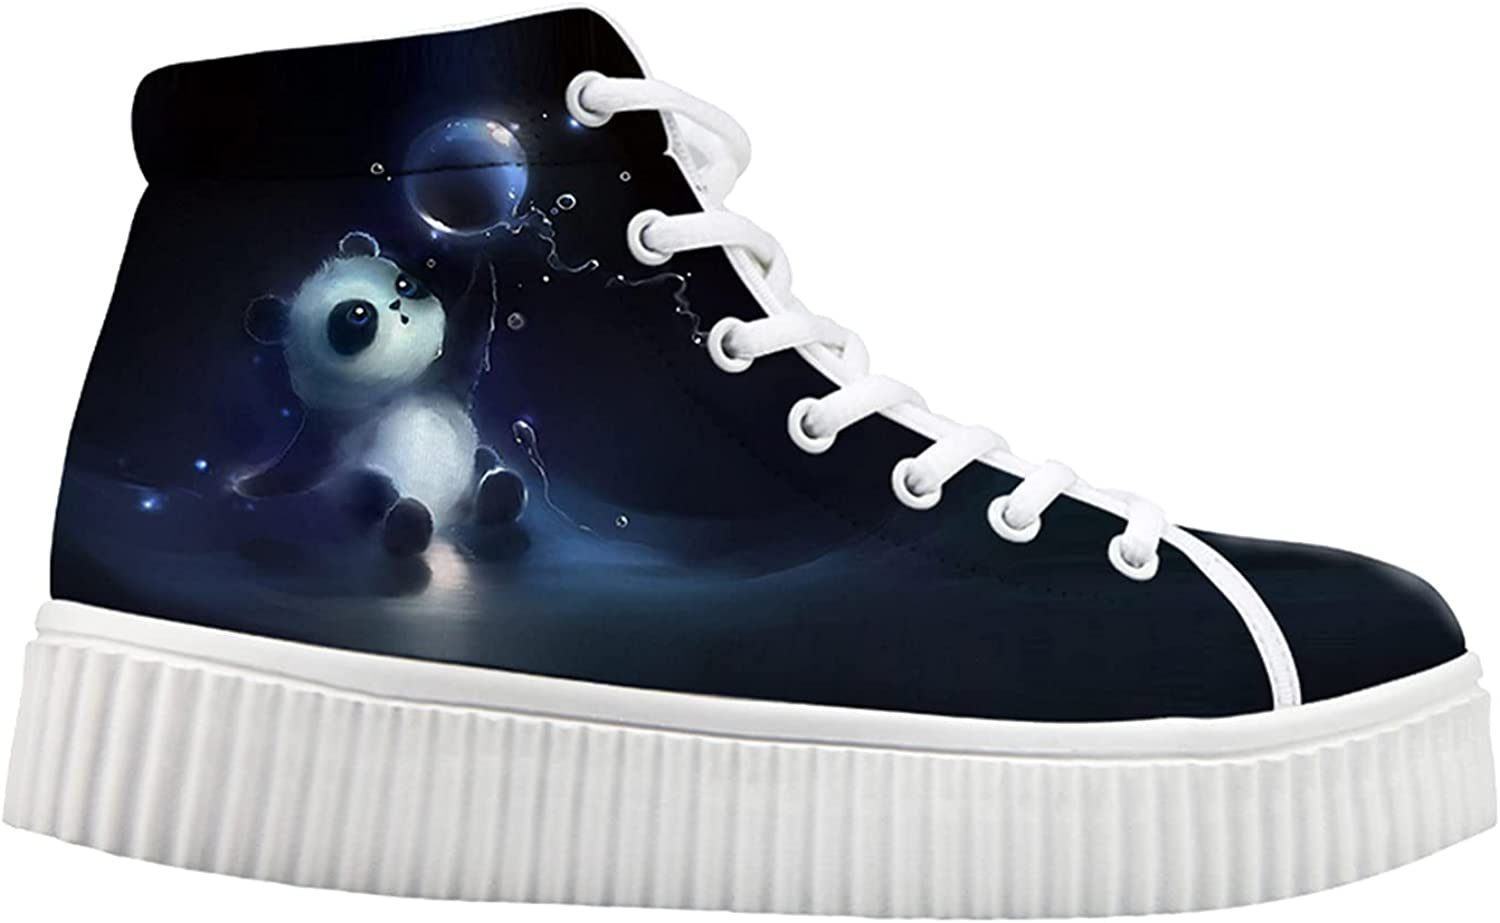 OFFicial site Owaheson Lovely Panda Bear Baby Water Polo Wedge Sneaker Playing Popular popular